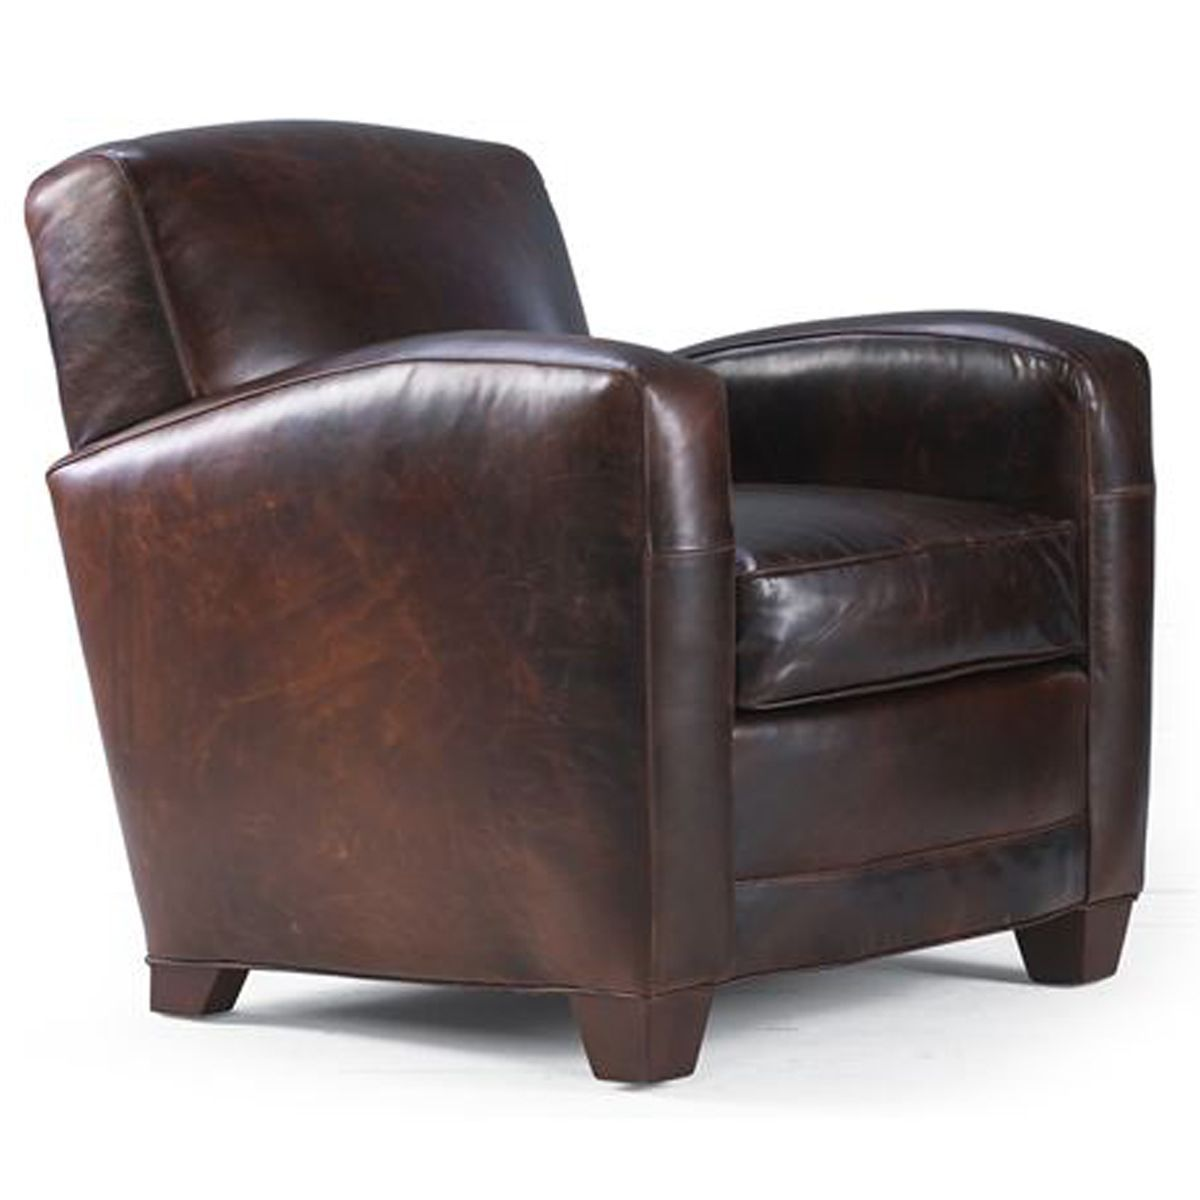 Bon 20+ Manhattan Leather Chair   Cool Apartment Furniture Check More At  Http://steelbookreview.com/50 Manhattan Leather Chair Best Paint For  Furniture/ ...